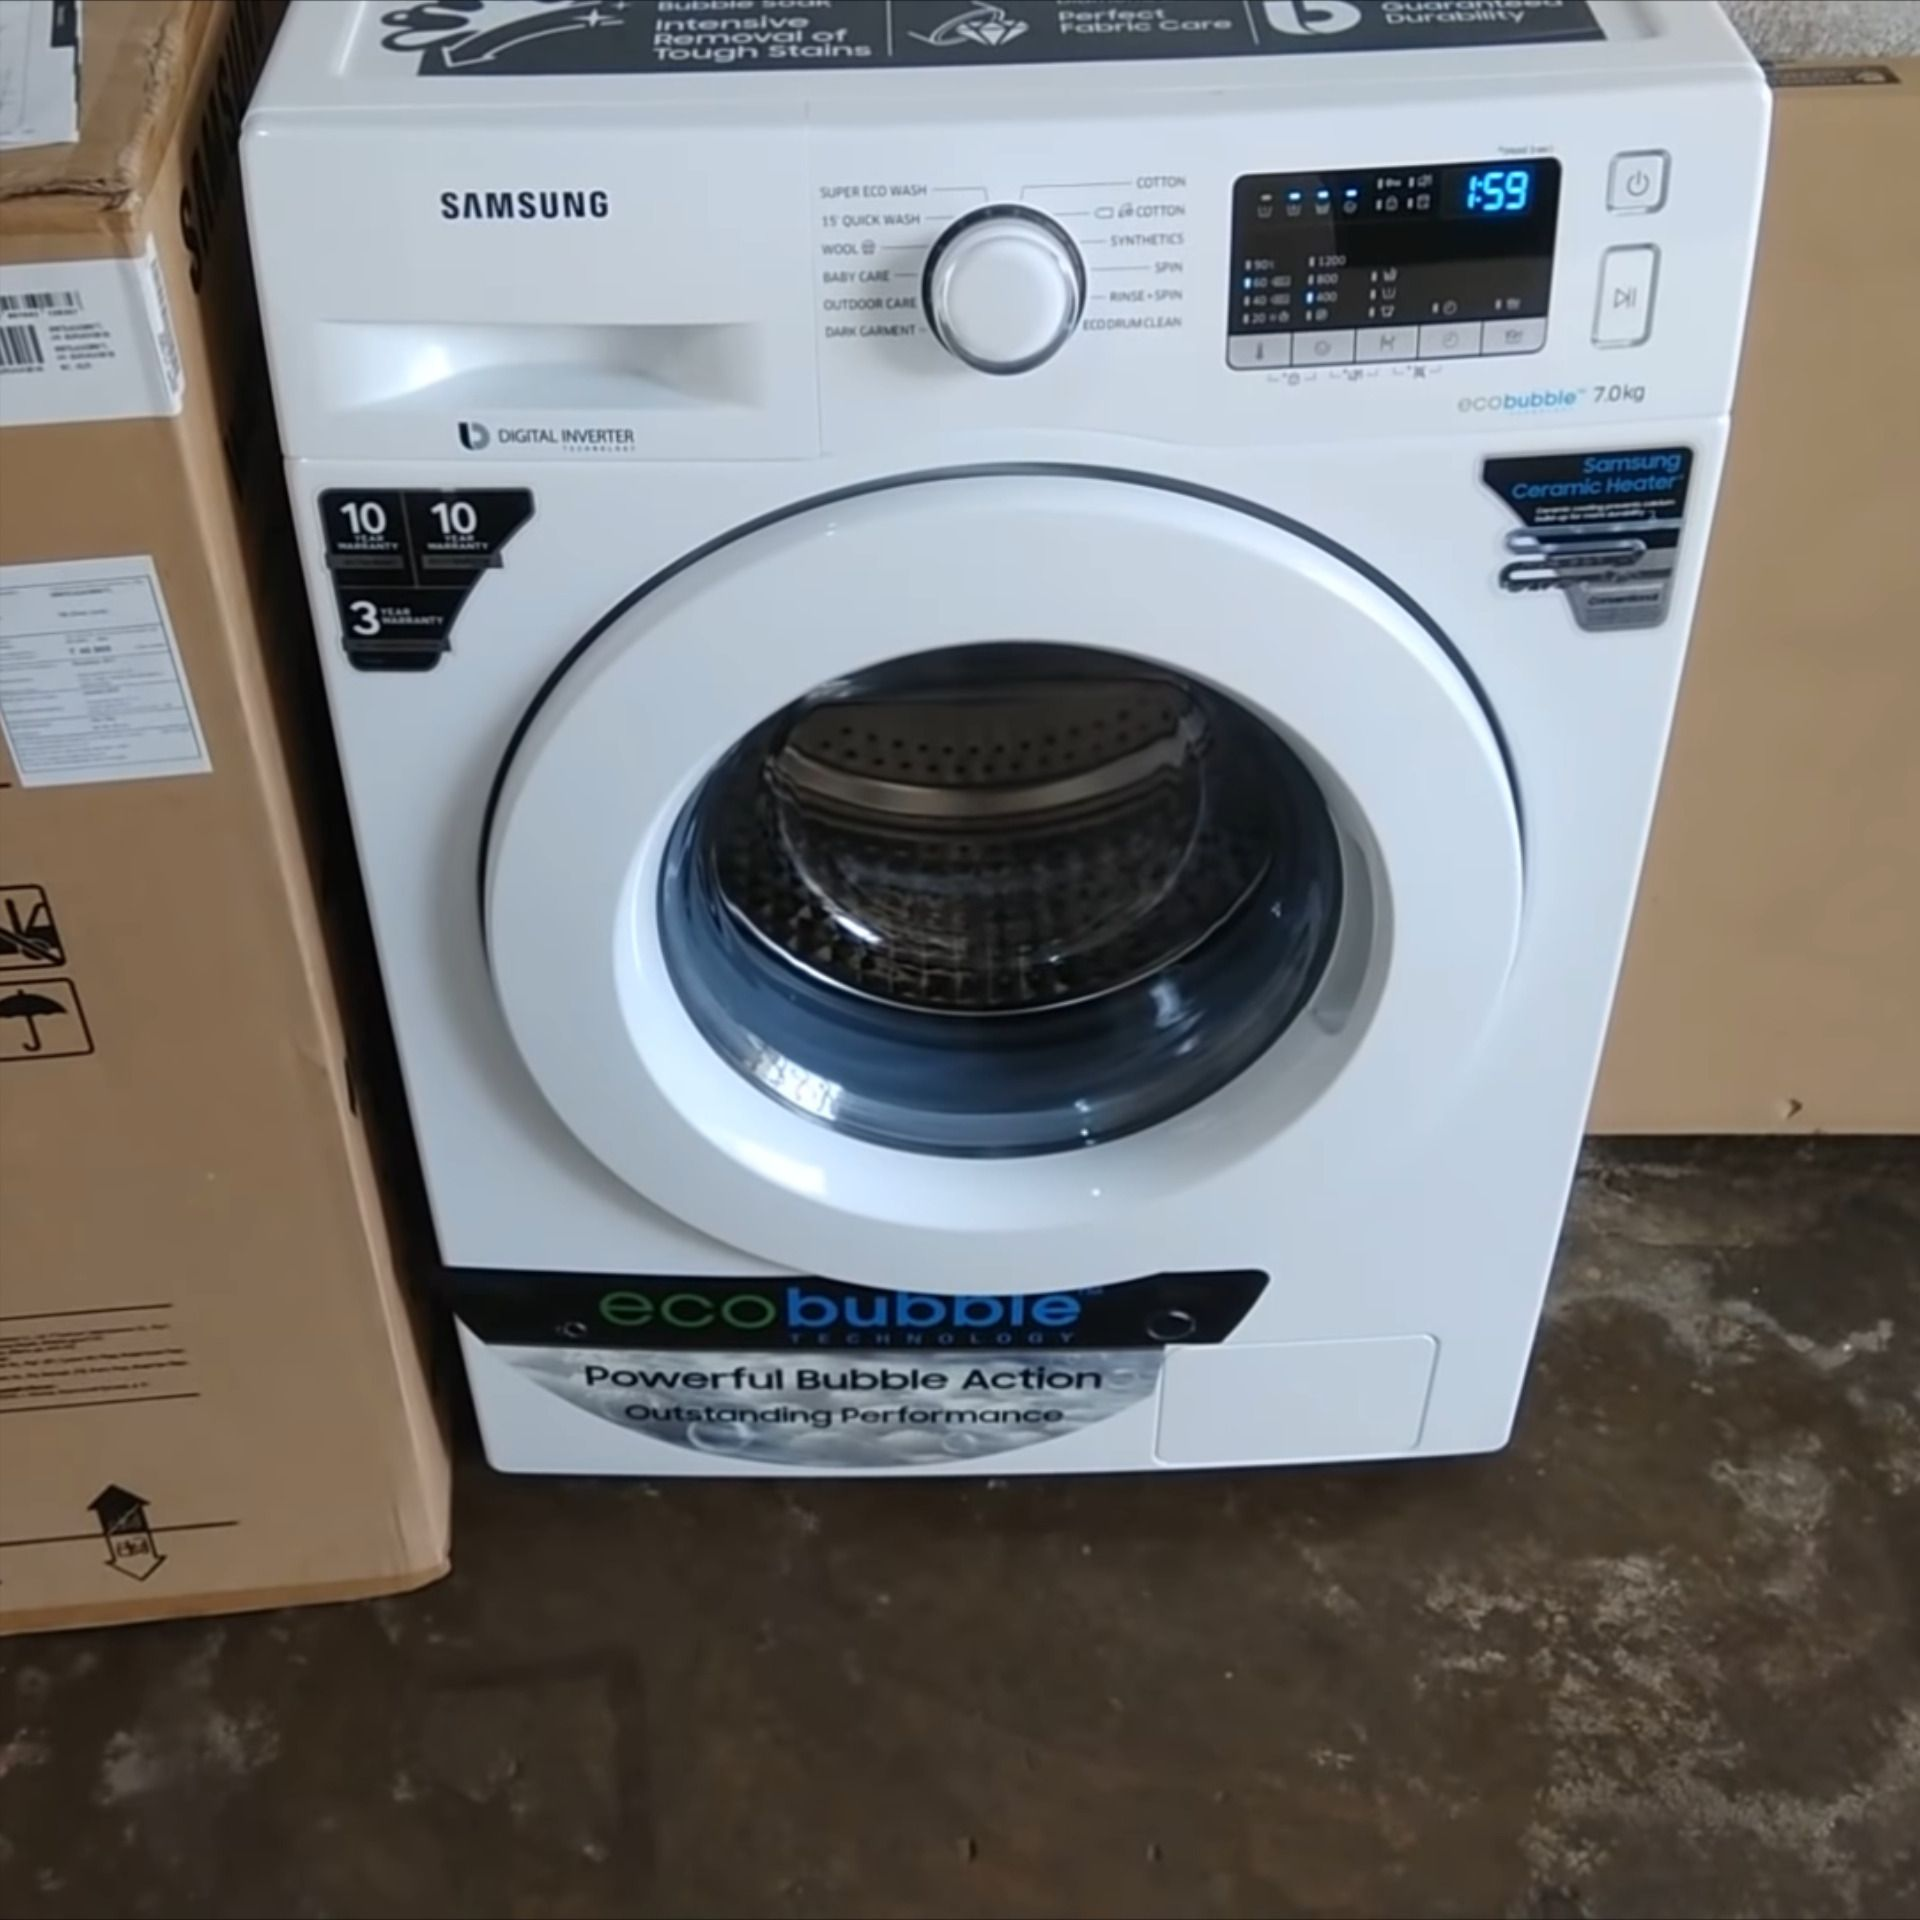 Lowes Washing Machine Hose Washing Machine Amazon Estate Washing Machine Manual Coin Operated In 2020 Washing Machine Automatic Washing Machine Washing